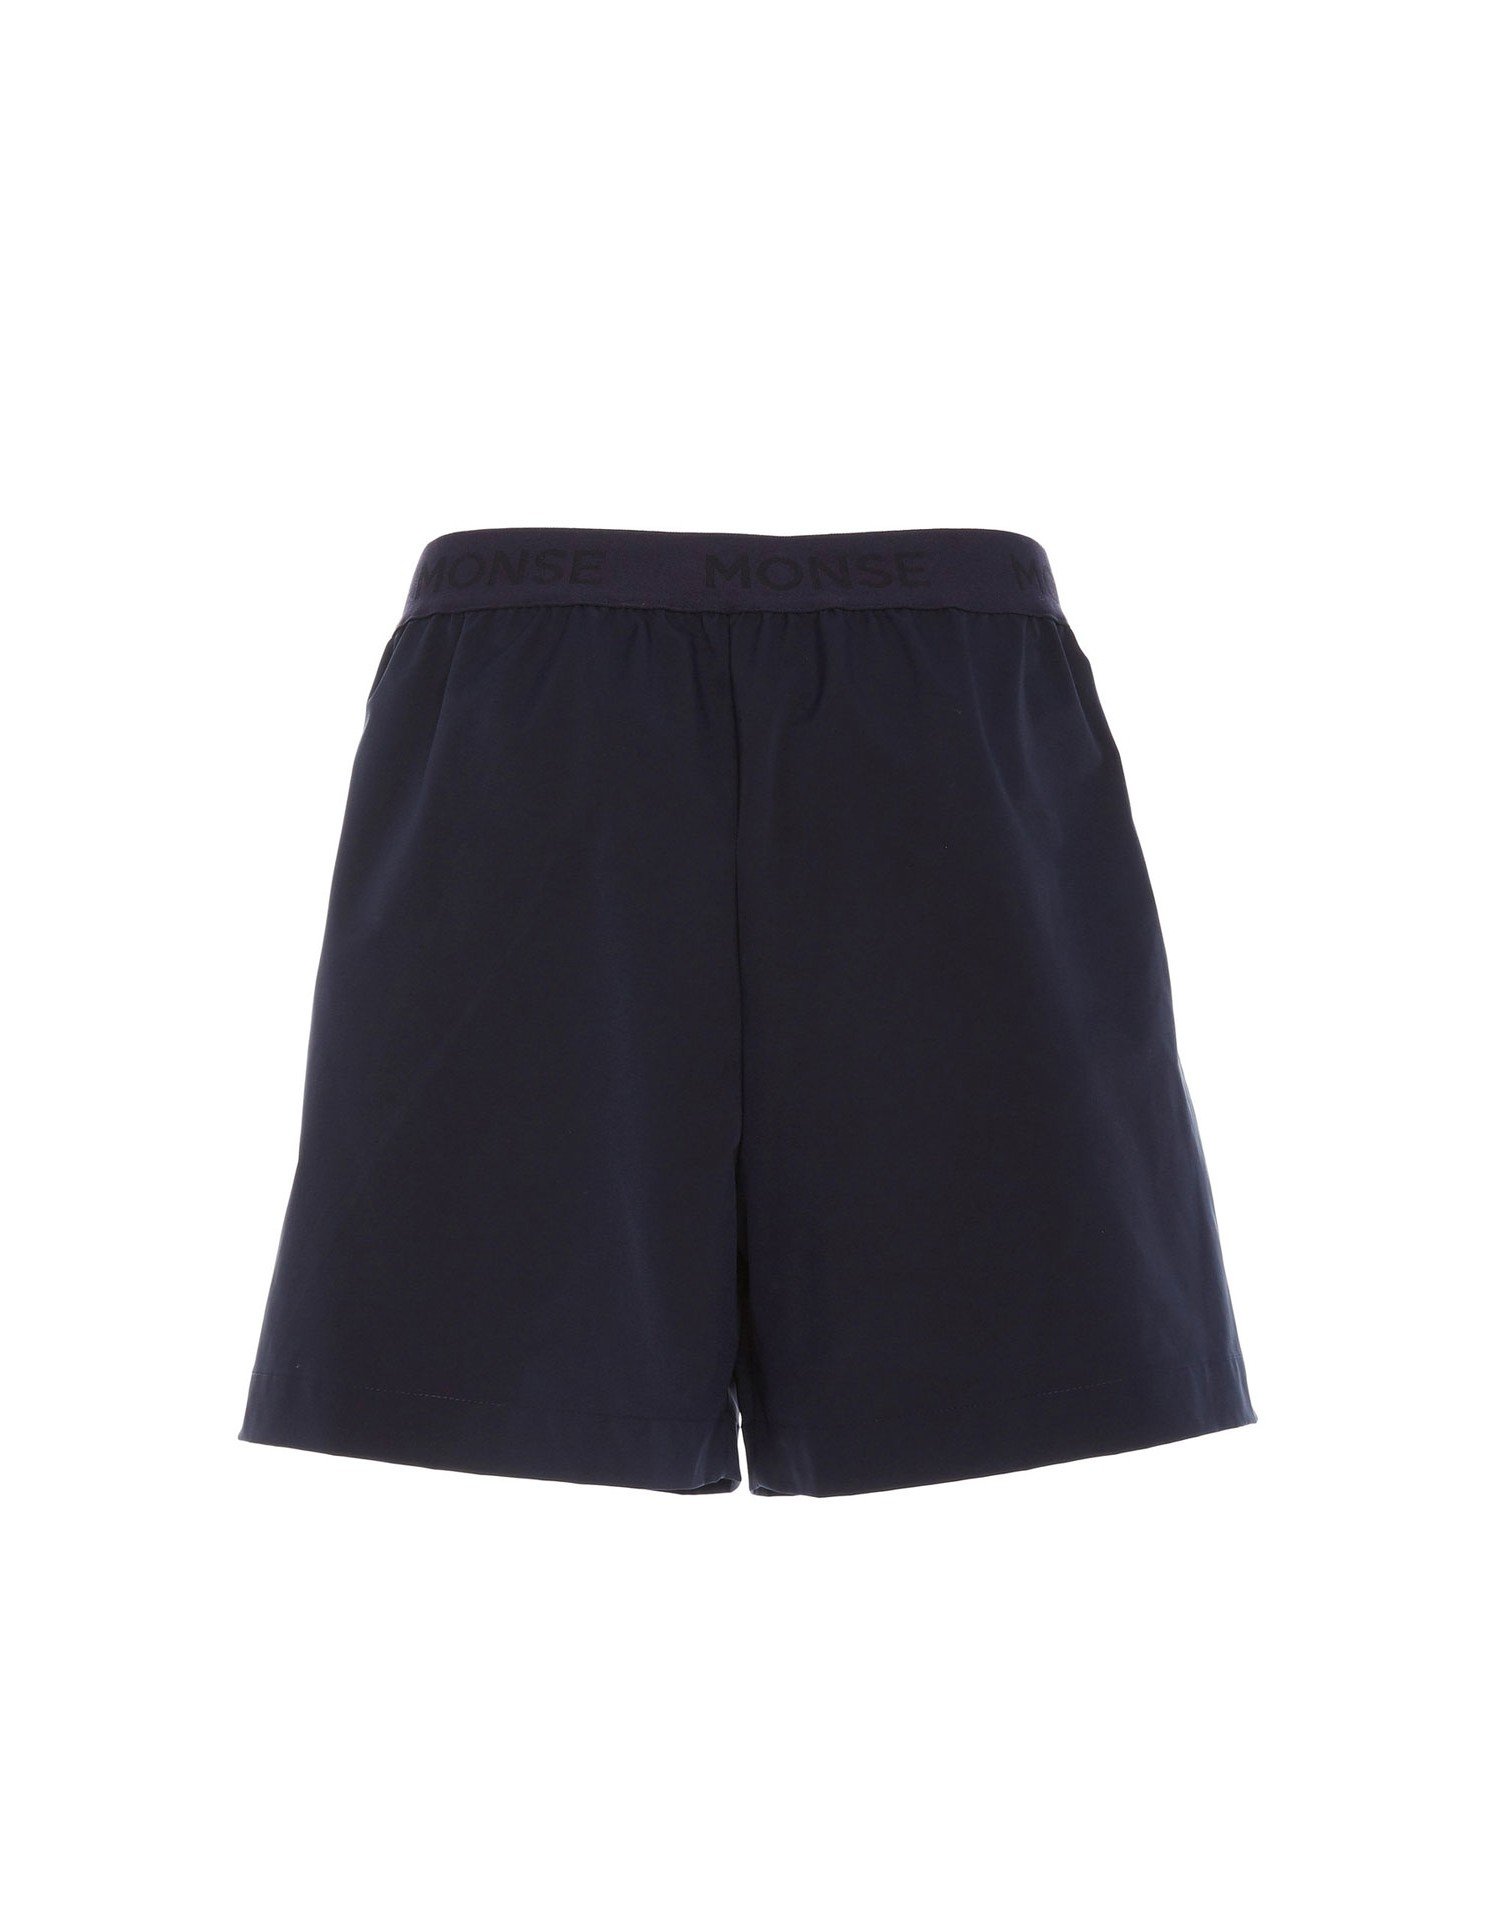 Monse Women's Jersey Shorts in Navy Back